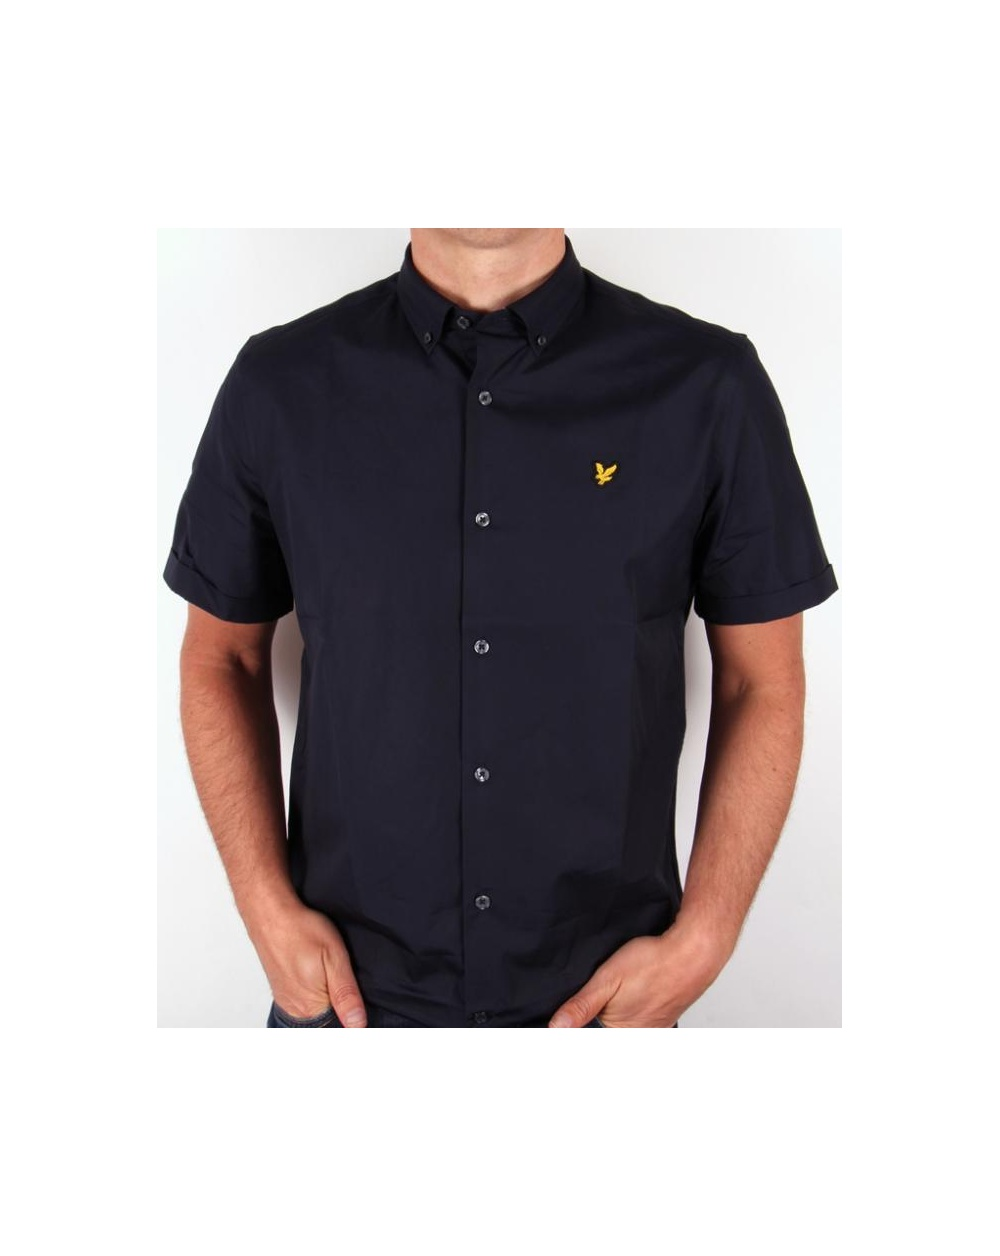 Lyle and scott poplin s s shirt navy lyle and scott for What is a poplin shirt